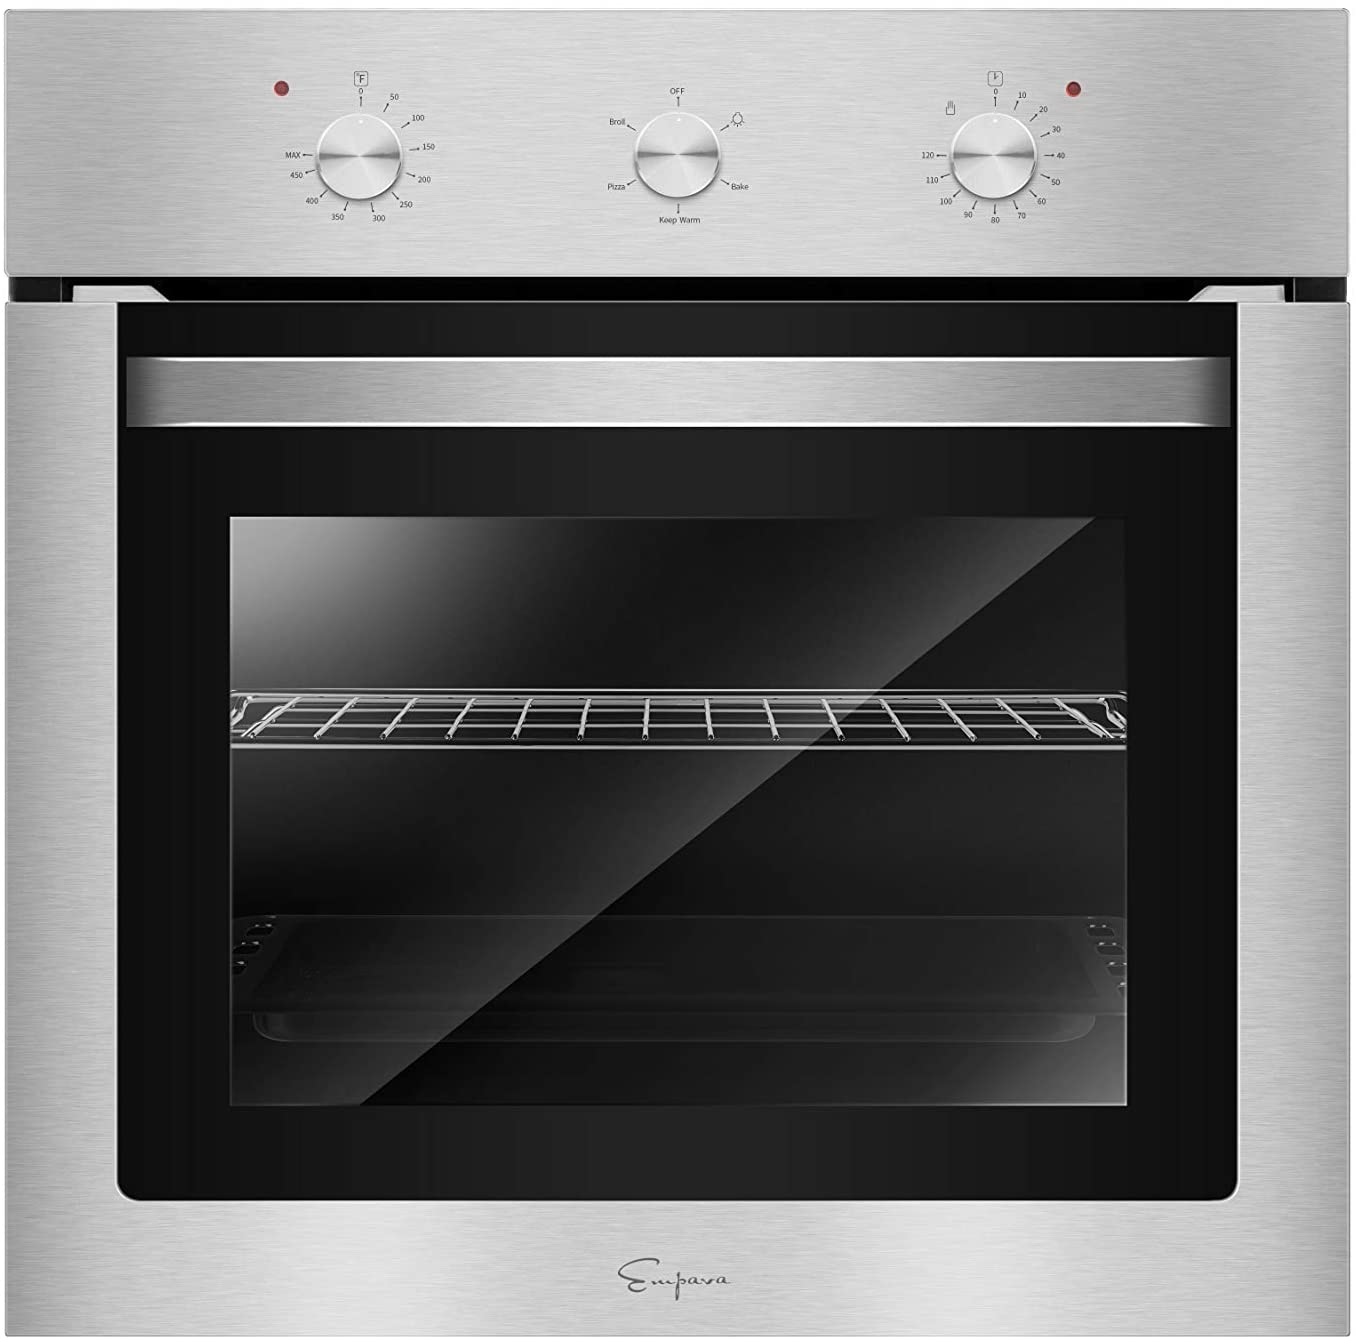 Empava 24 in. Electric Single Wall Oven with Basic Broil/Bake Functions Mechanical Knobs Control in Stainless Steel Model 2020, A01, Black